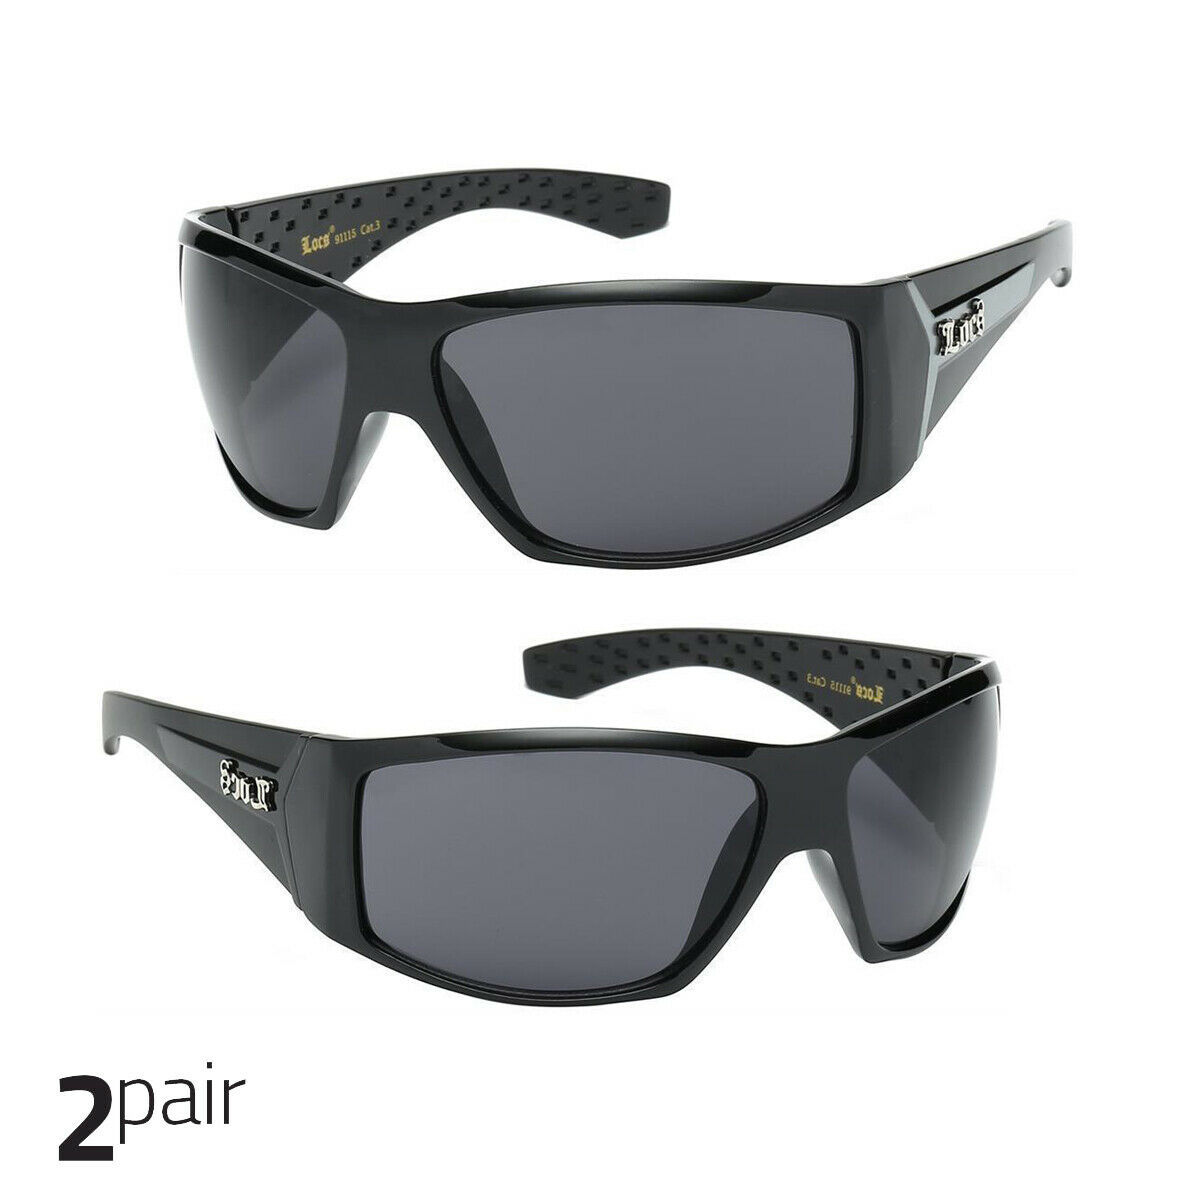 7cf7ccfb3806 57. 57. Large OG Real Locs Sunglasses Dark Gangster Shades Men Loc Glasses  Black Black. Free Shipping